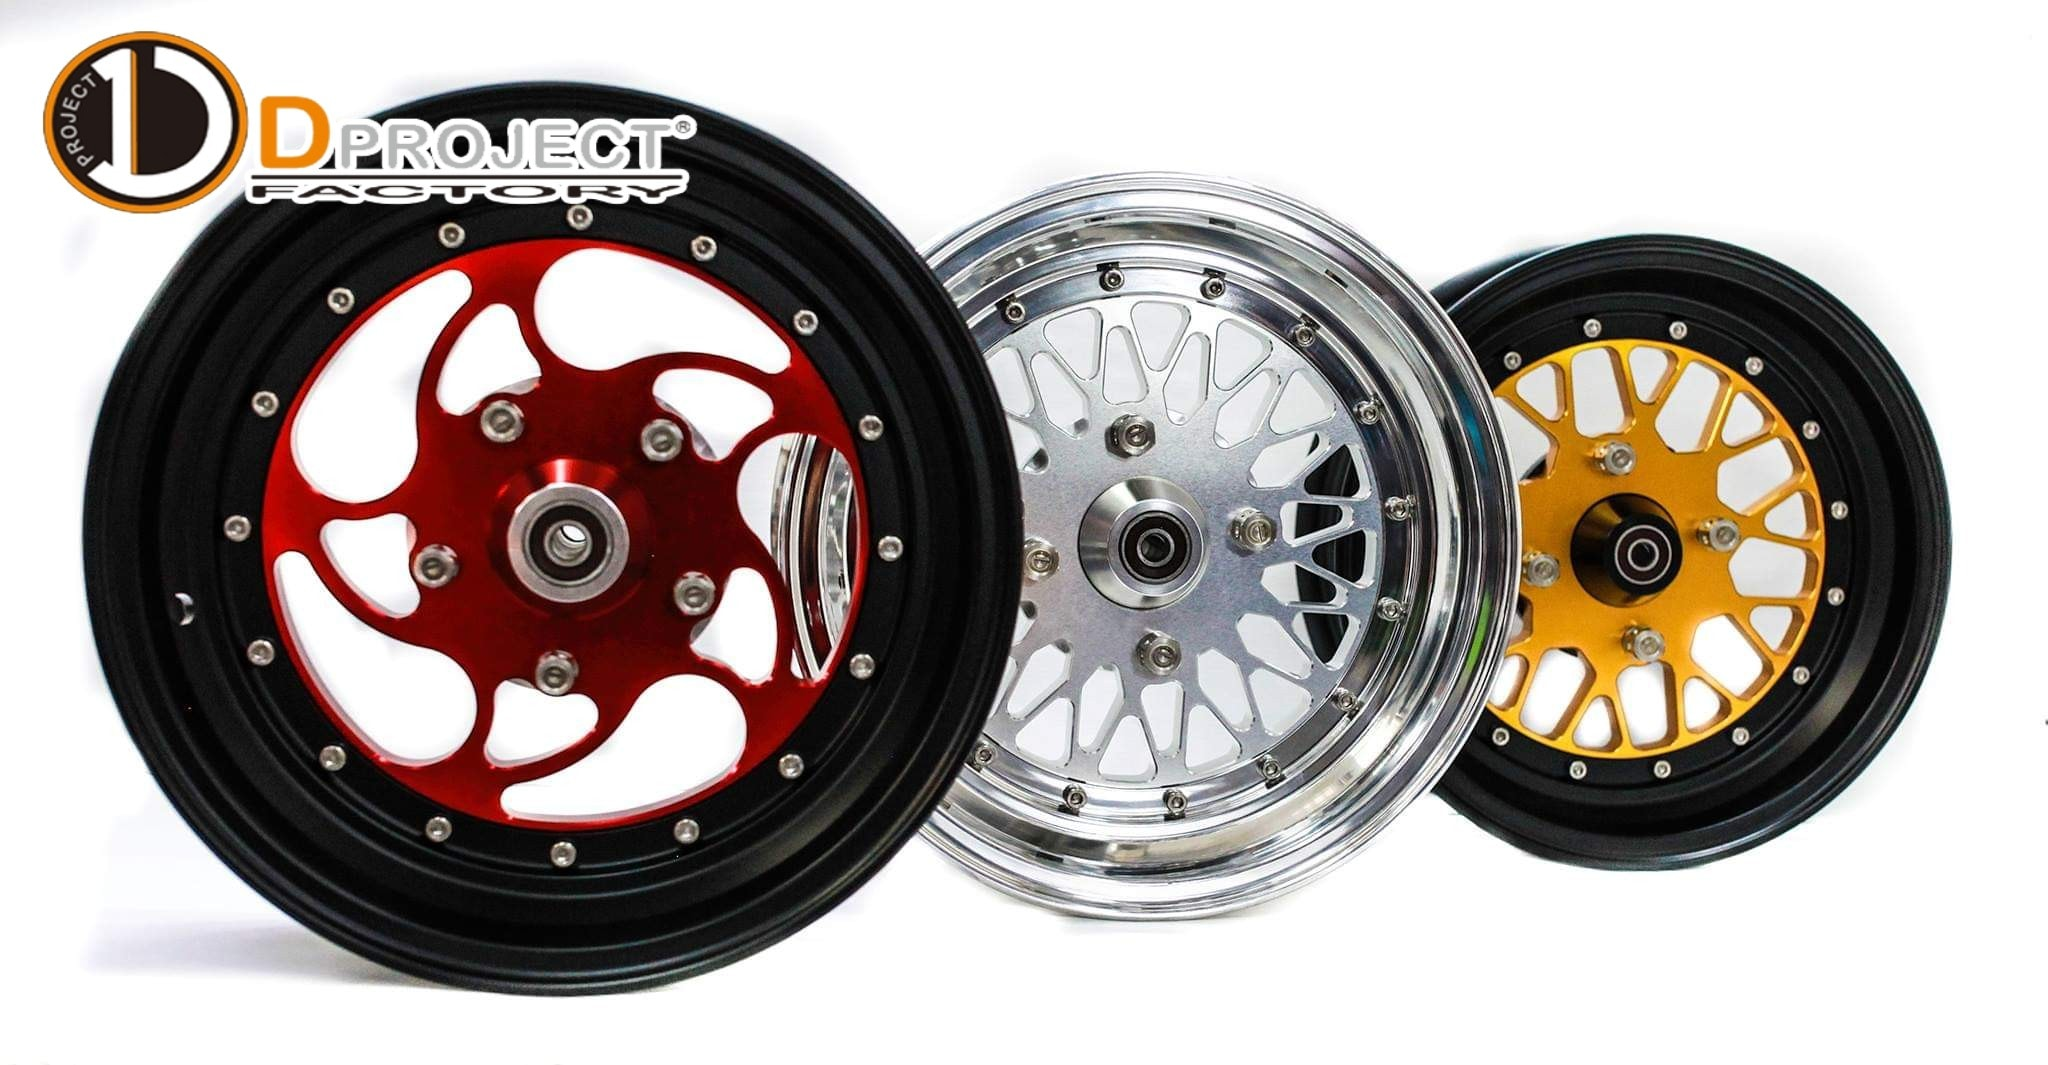 Dproject motorcycle wheels variation